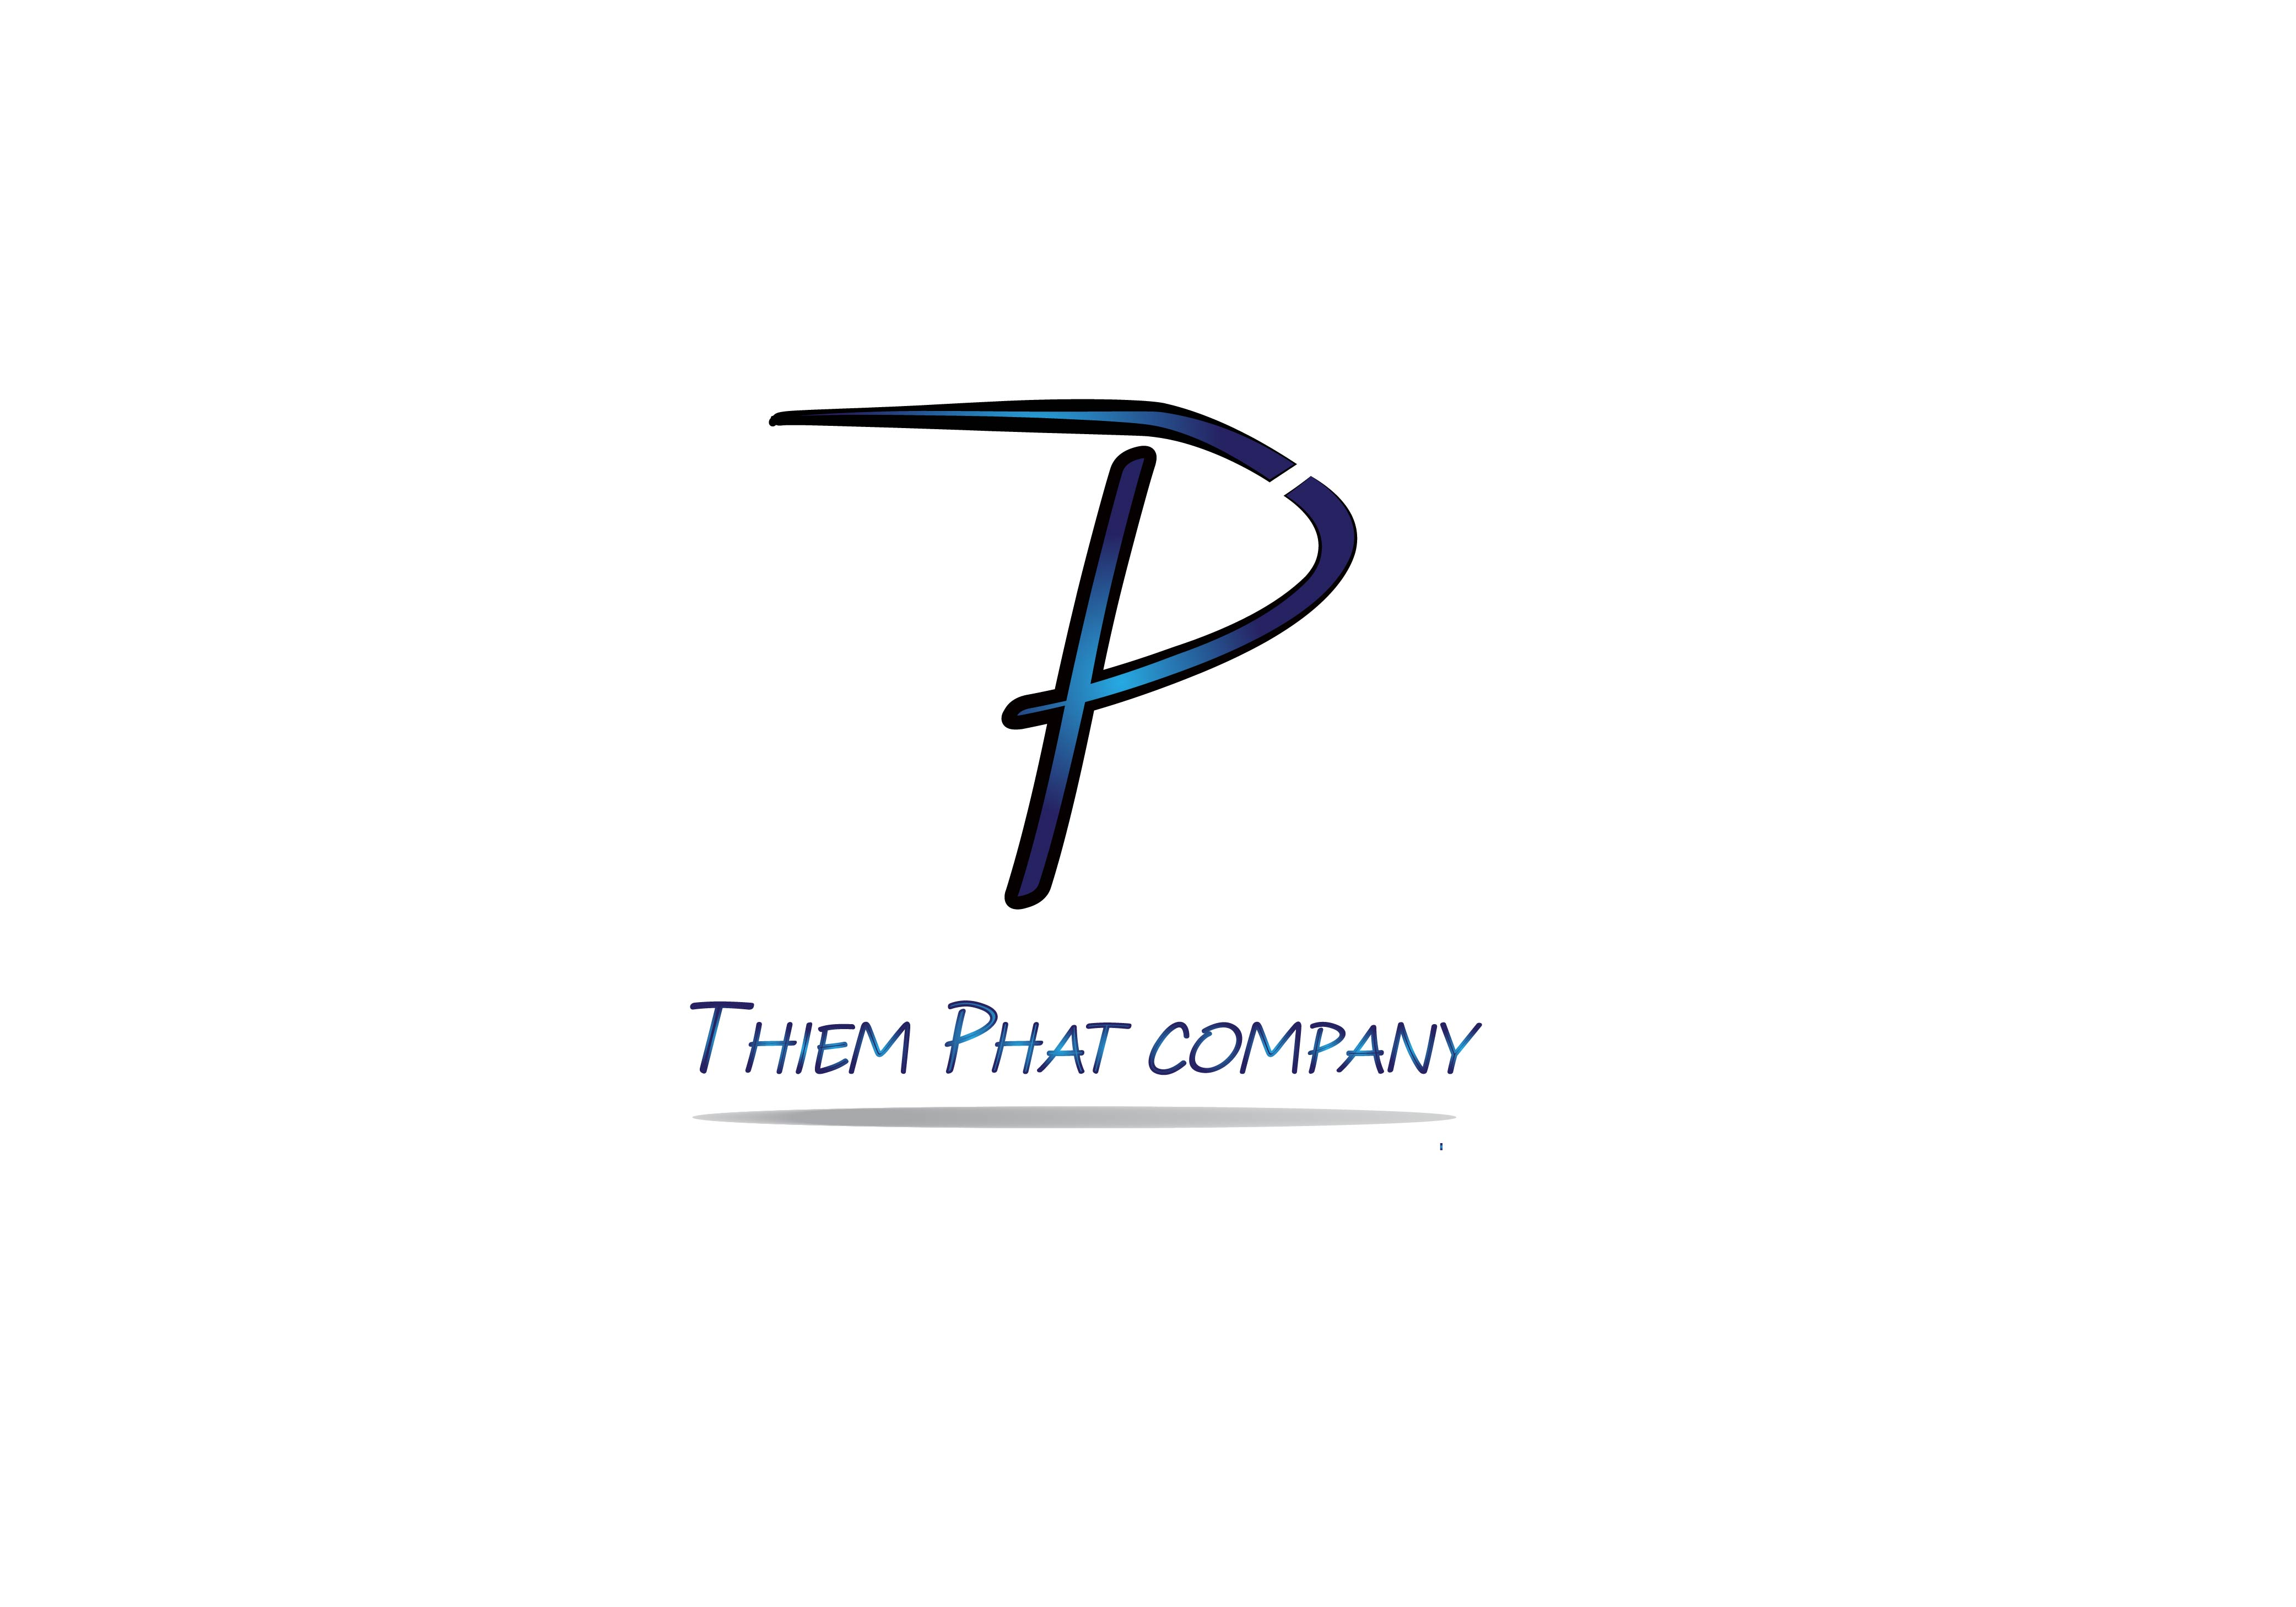 Logo Design by Bilal Baloch - Entry No. 6 in the Logo Design Contest New Logo Design for Thiem Phat company.